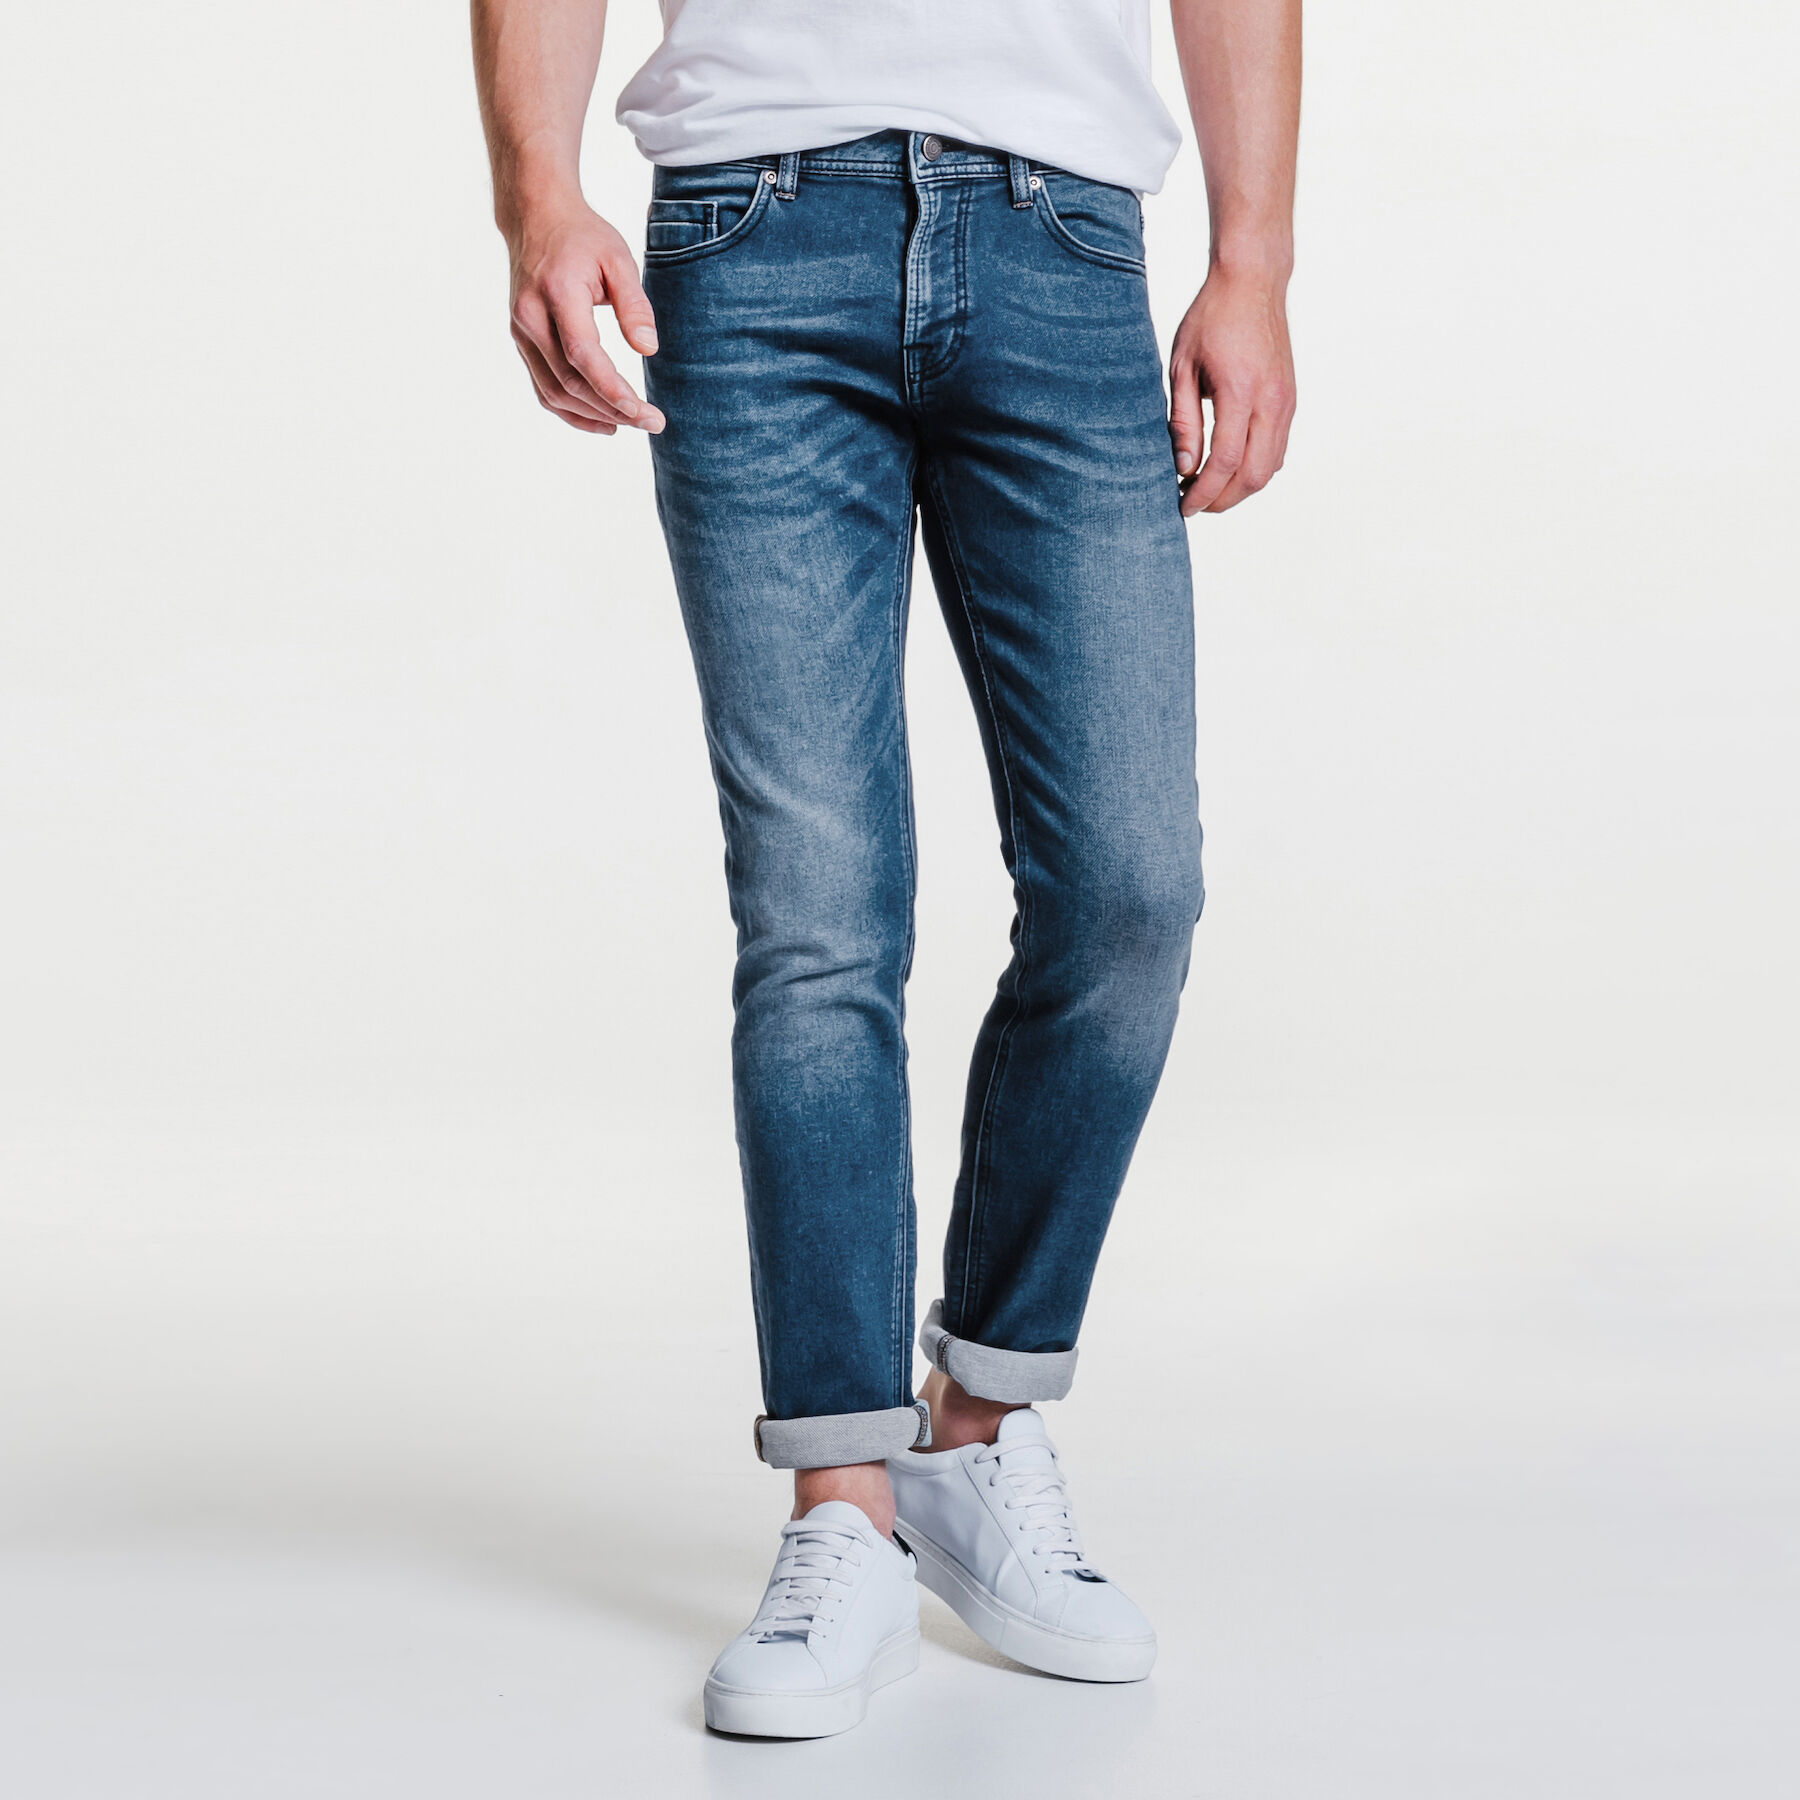 Jeans homme trackid=sp 006